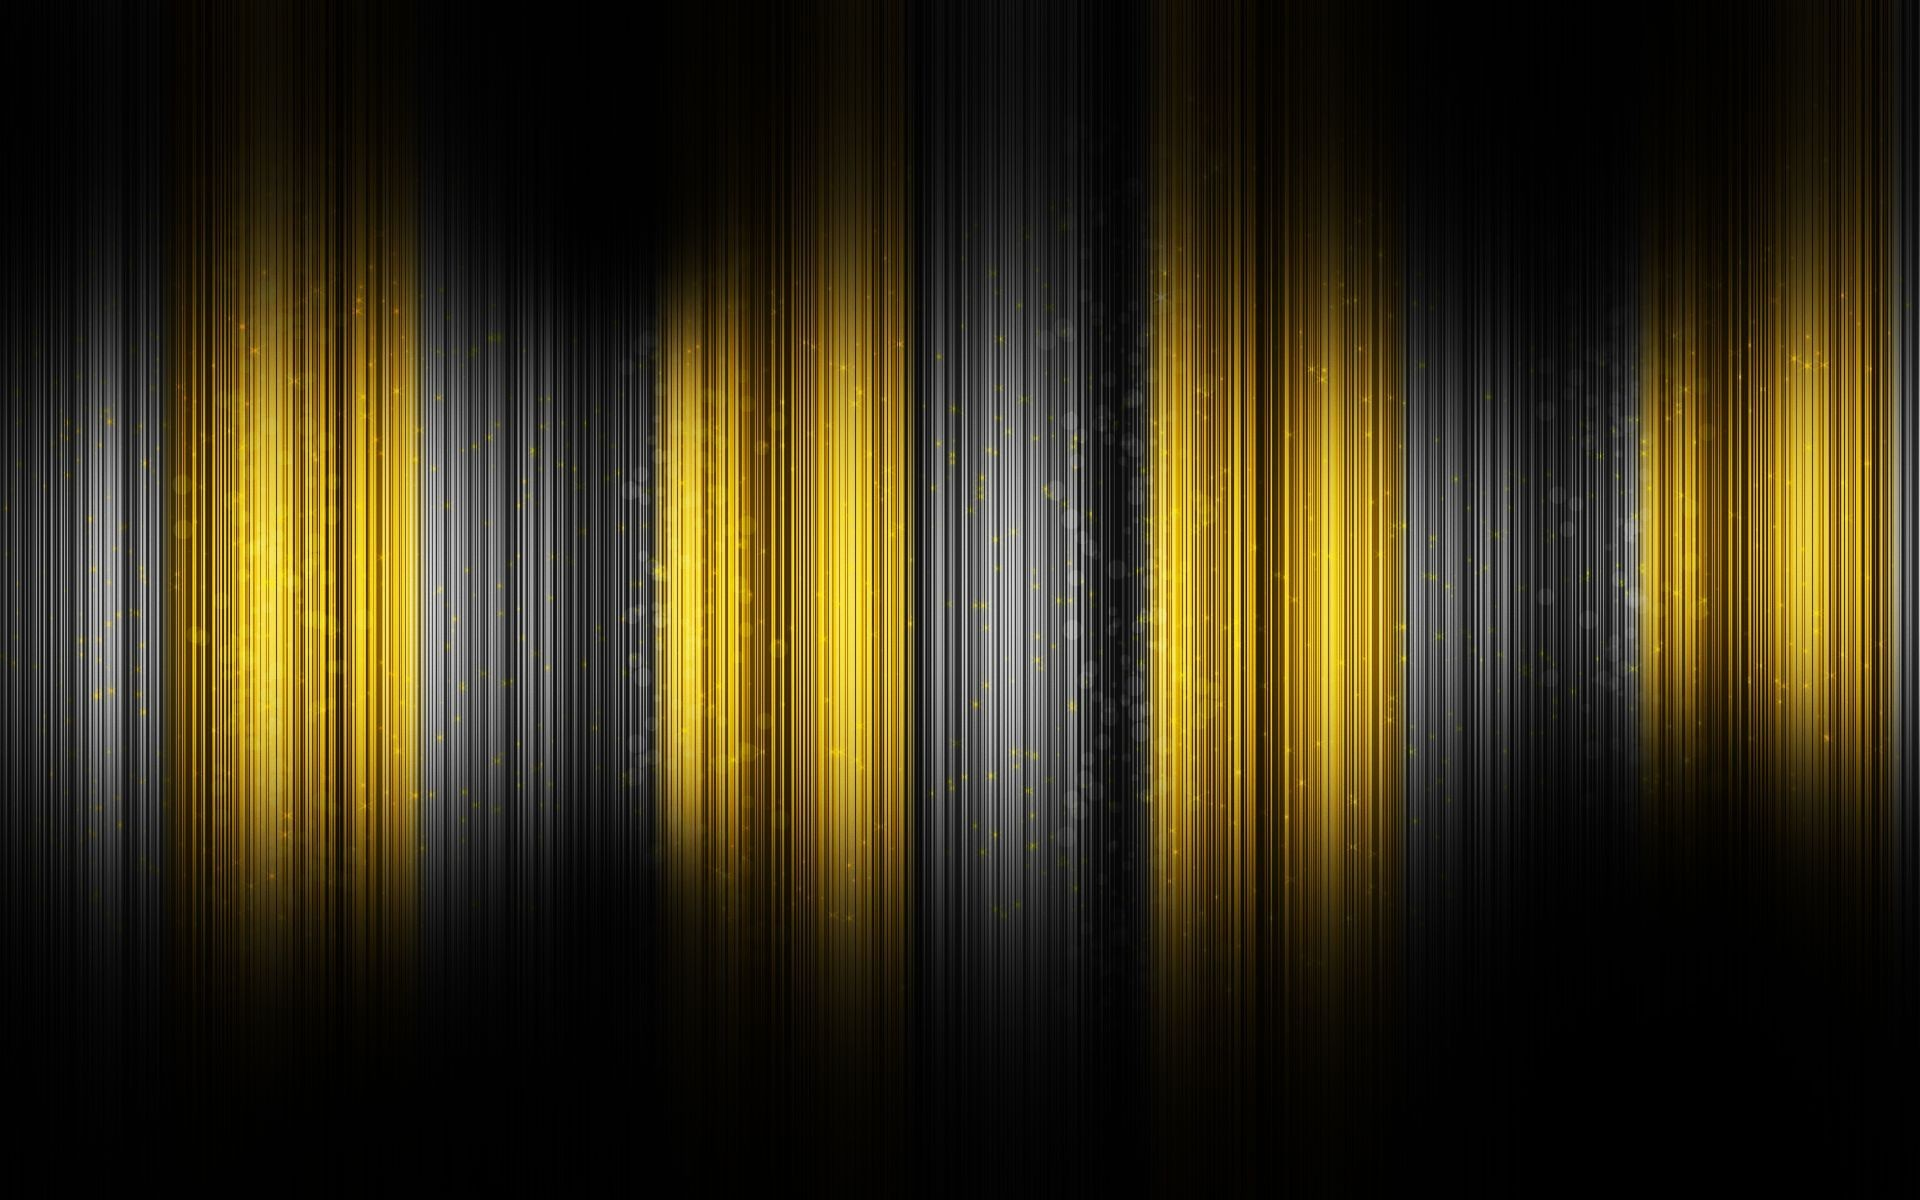 Abstract-yellow-and-black-latest-hd-wallpaper – · Background Hd  WallpaperMusic …